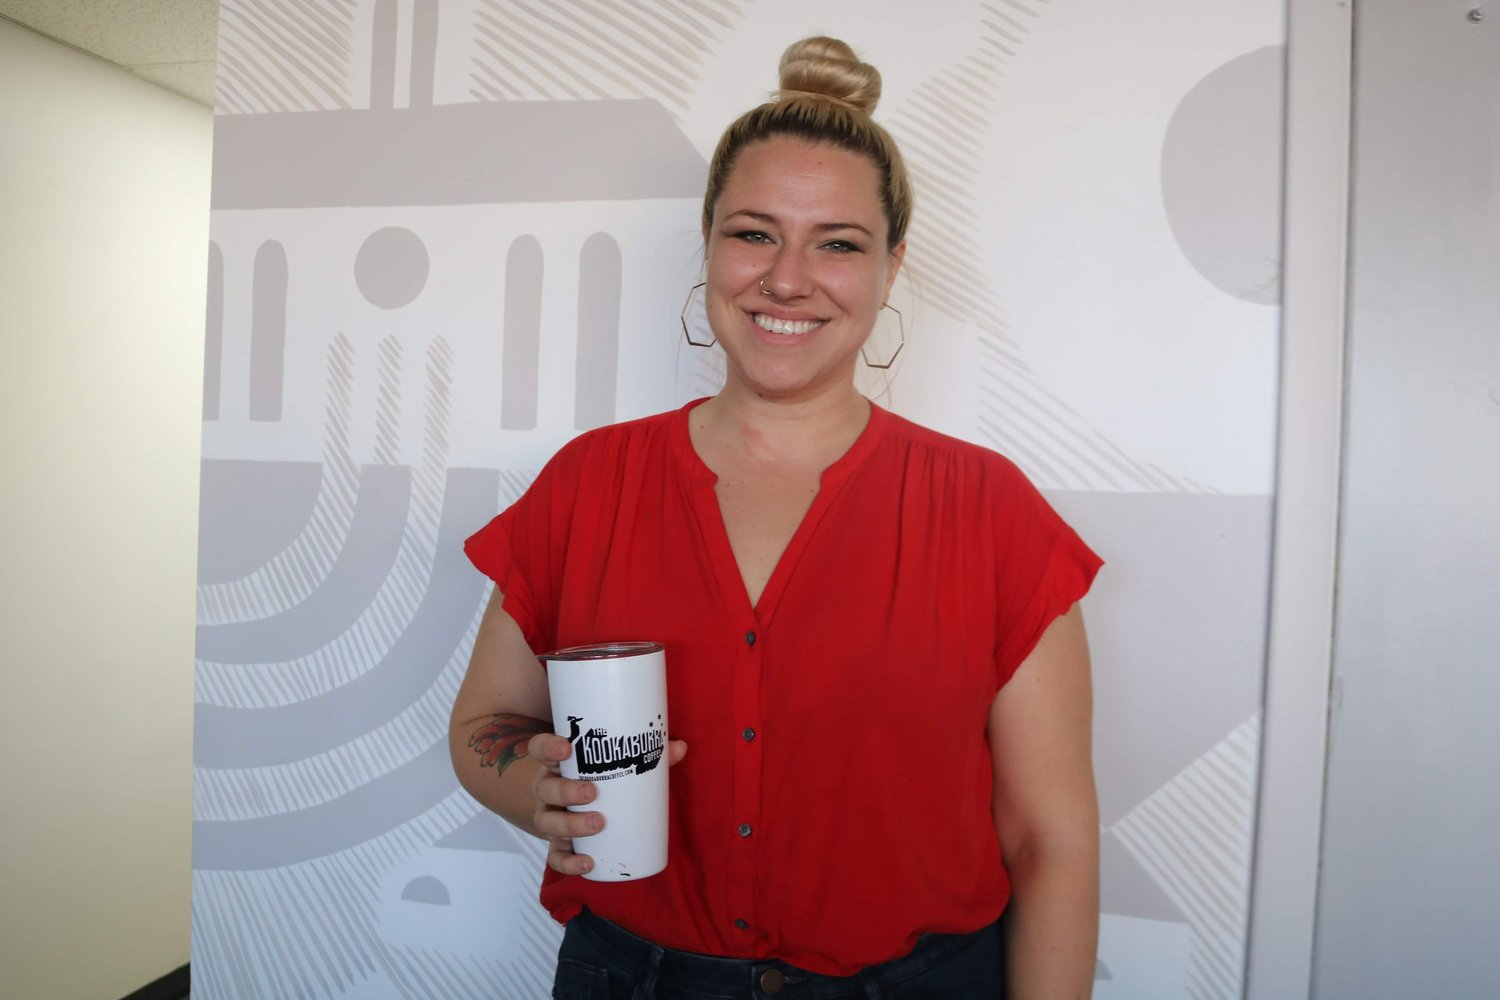 "The Kookaburra Coffee raised $2500 to donate to WIRES Wildlife Rescue and New South Wales Rural Fire Service, which are ""huge and very influential foundations,"" according to Kookaburra's director of sales Brittany Vidal."